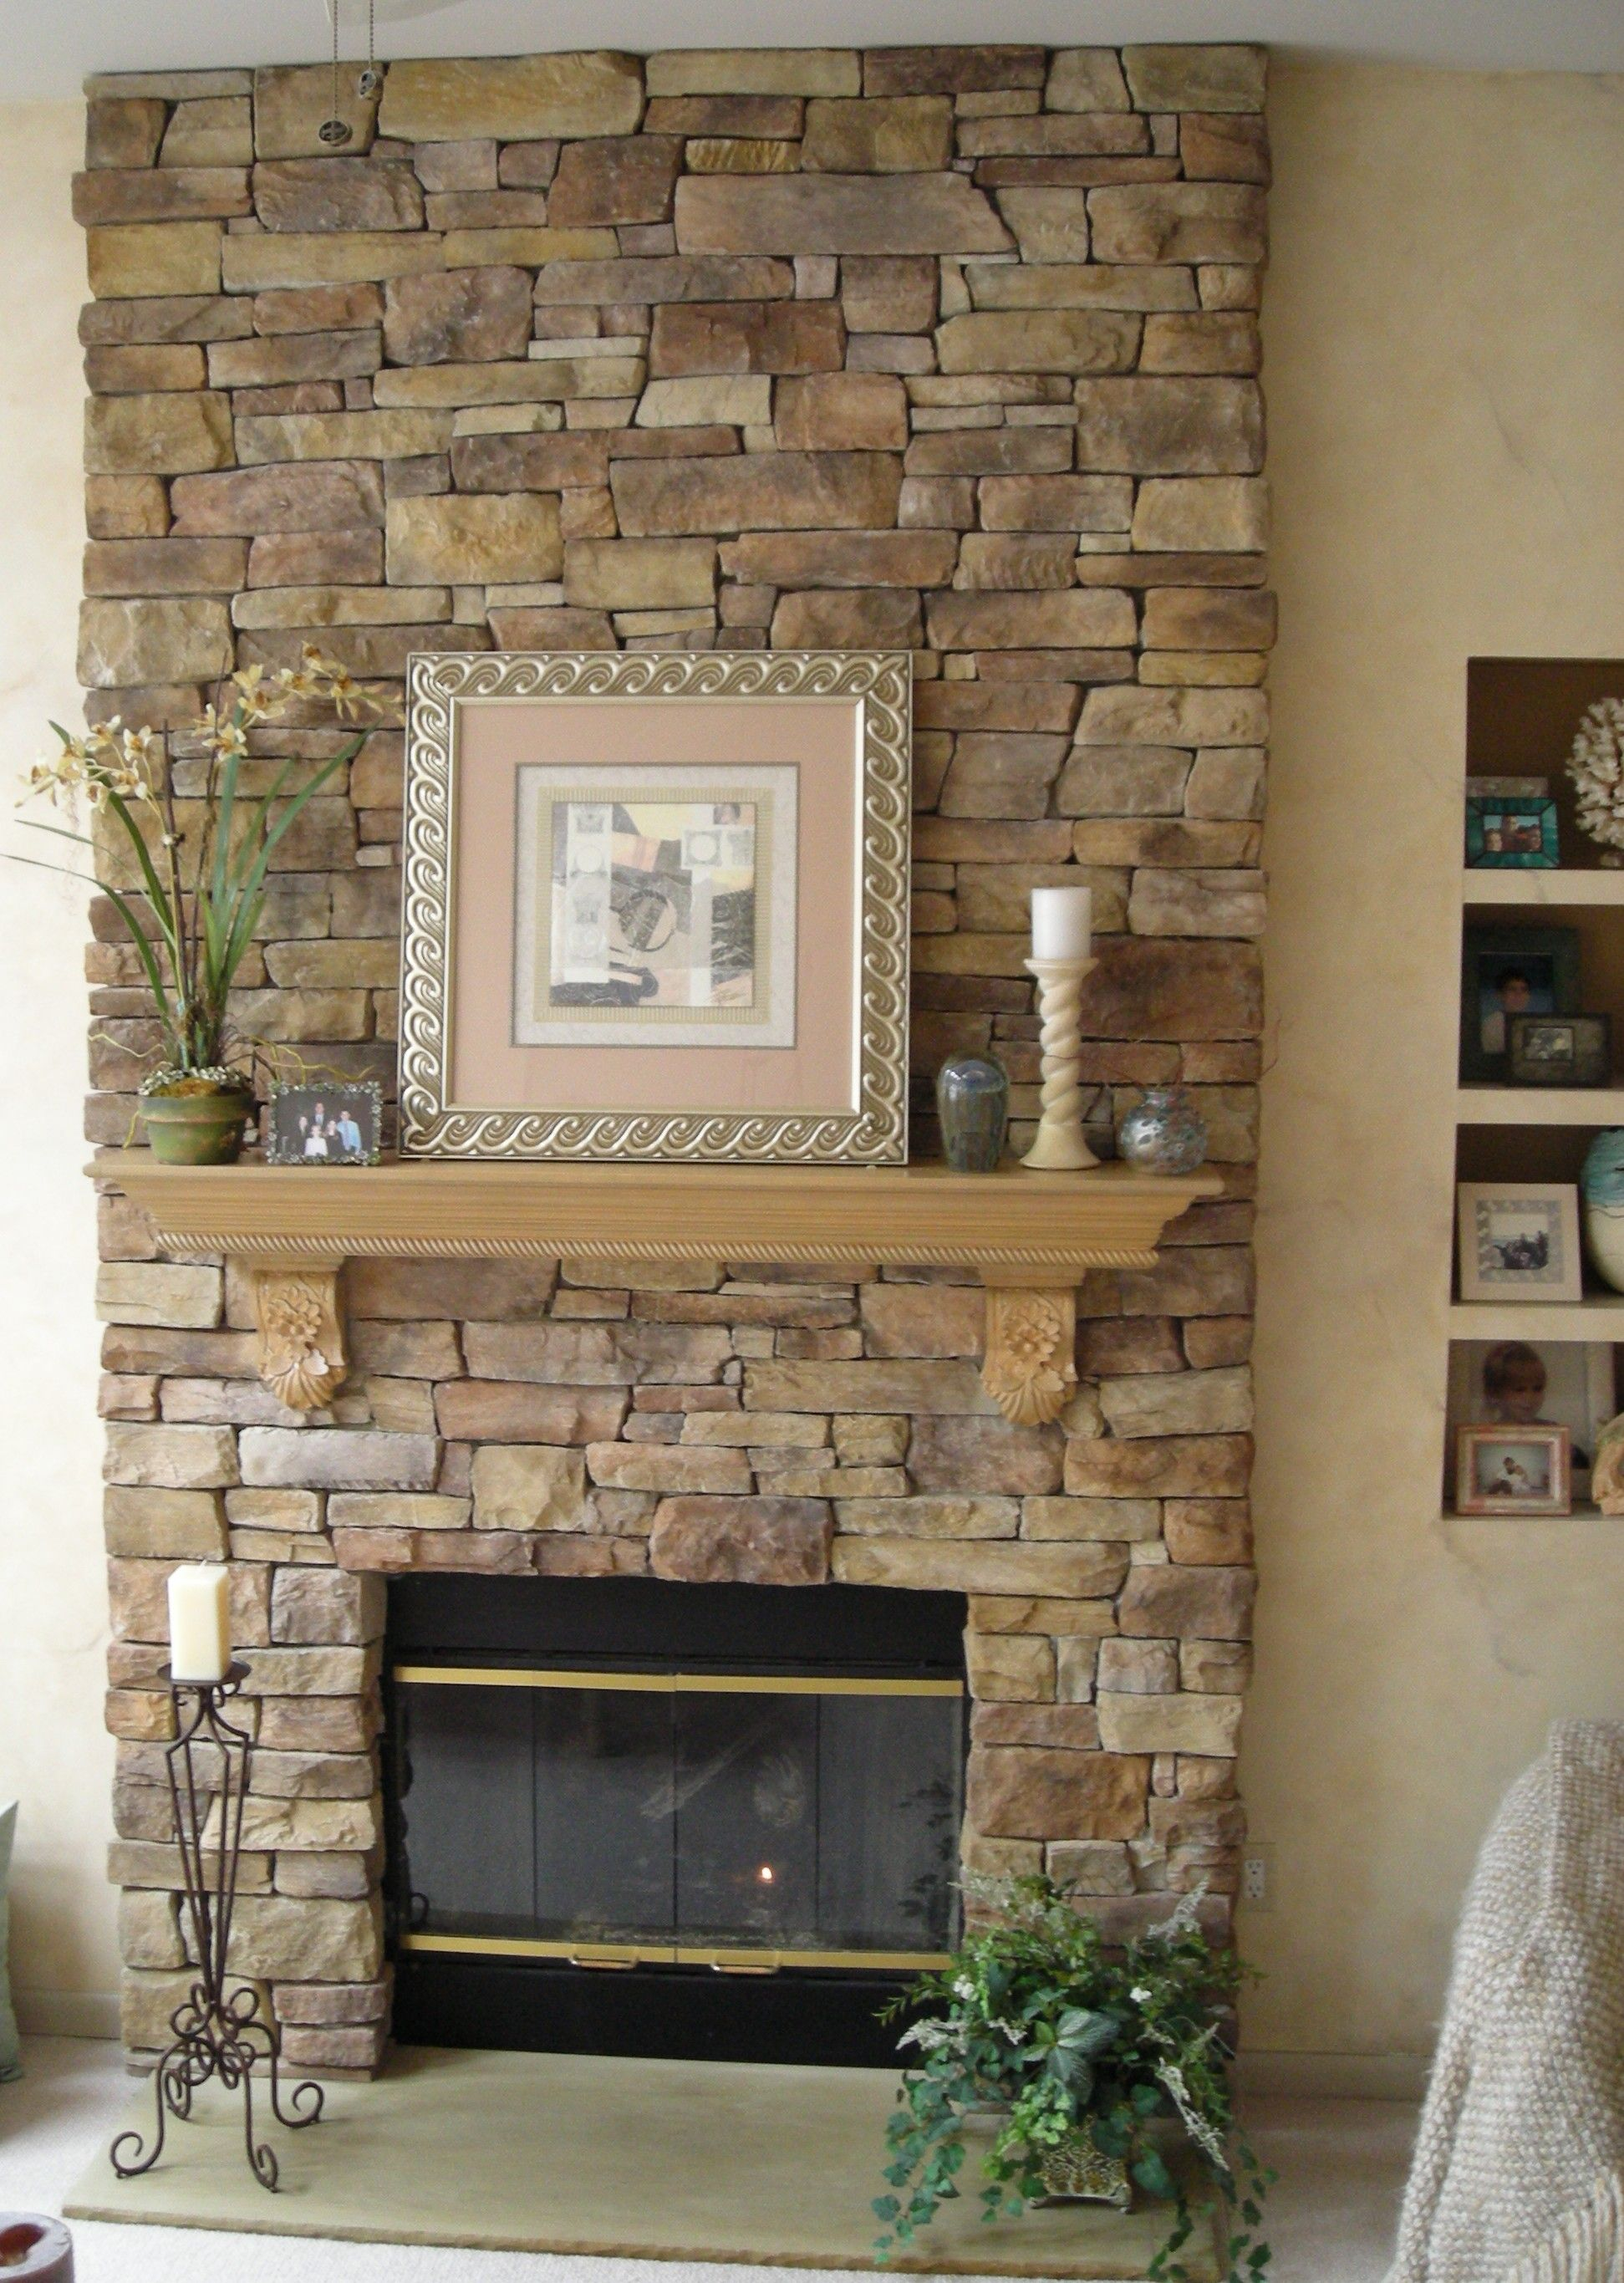 interior stone fireplace specializes in faux stone veneer and natural stone design description from homedesignez - How To Stone Veneer Fireplace